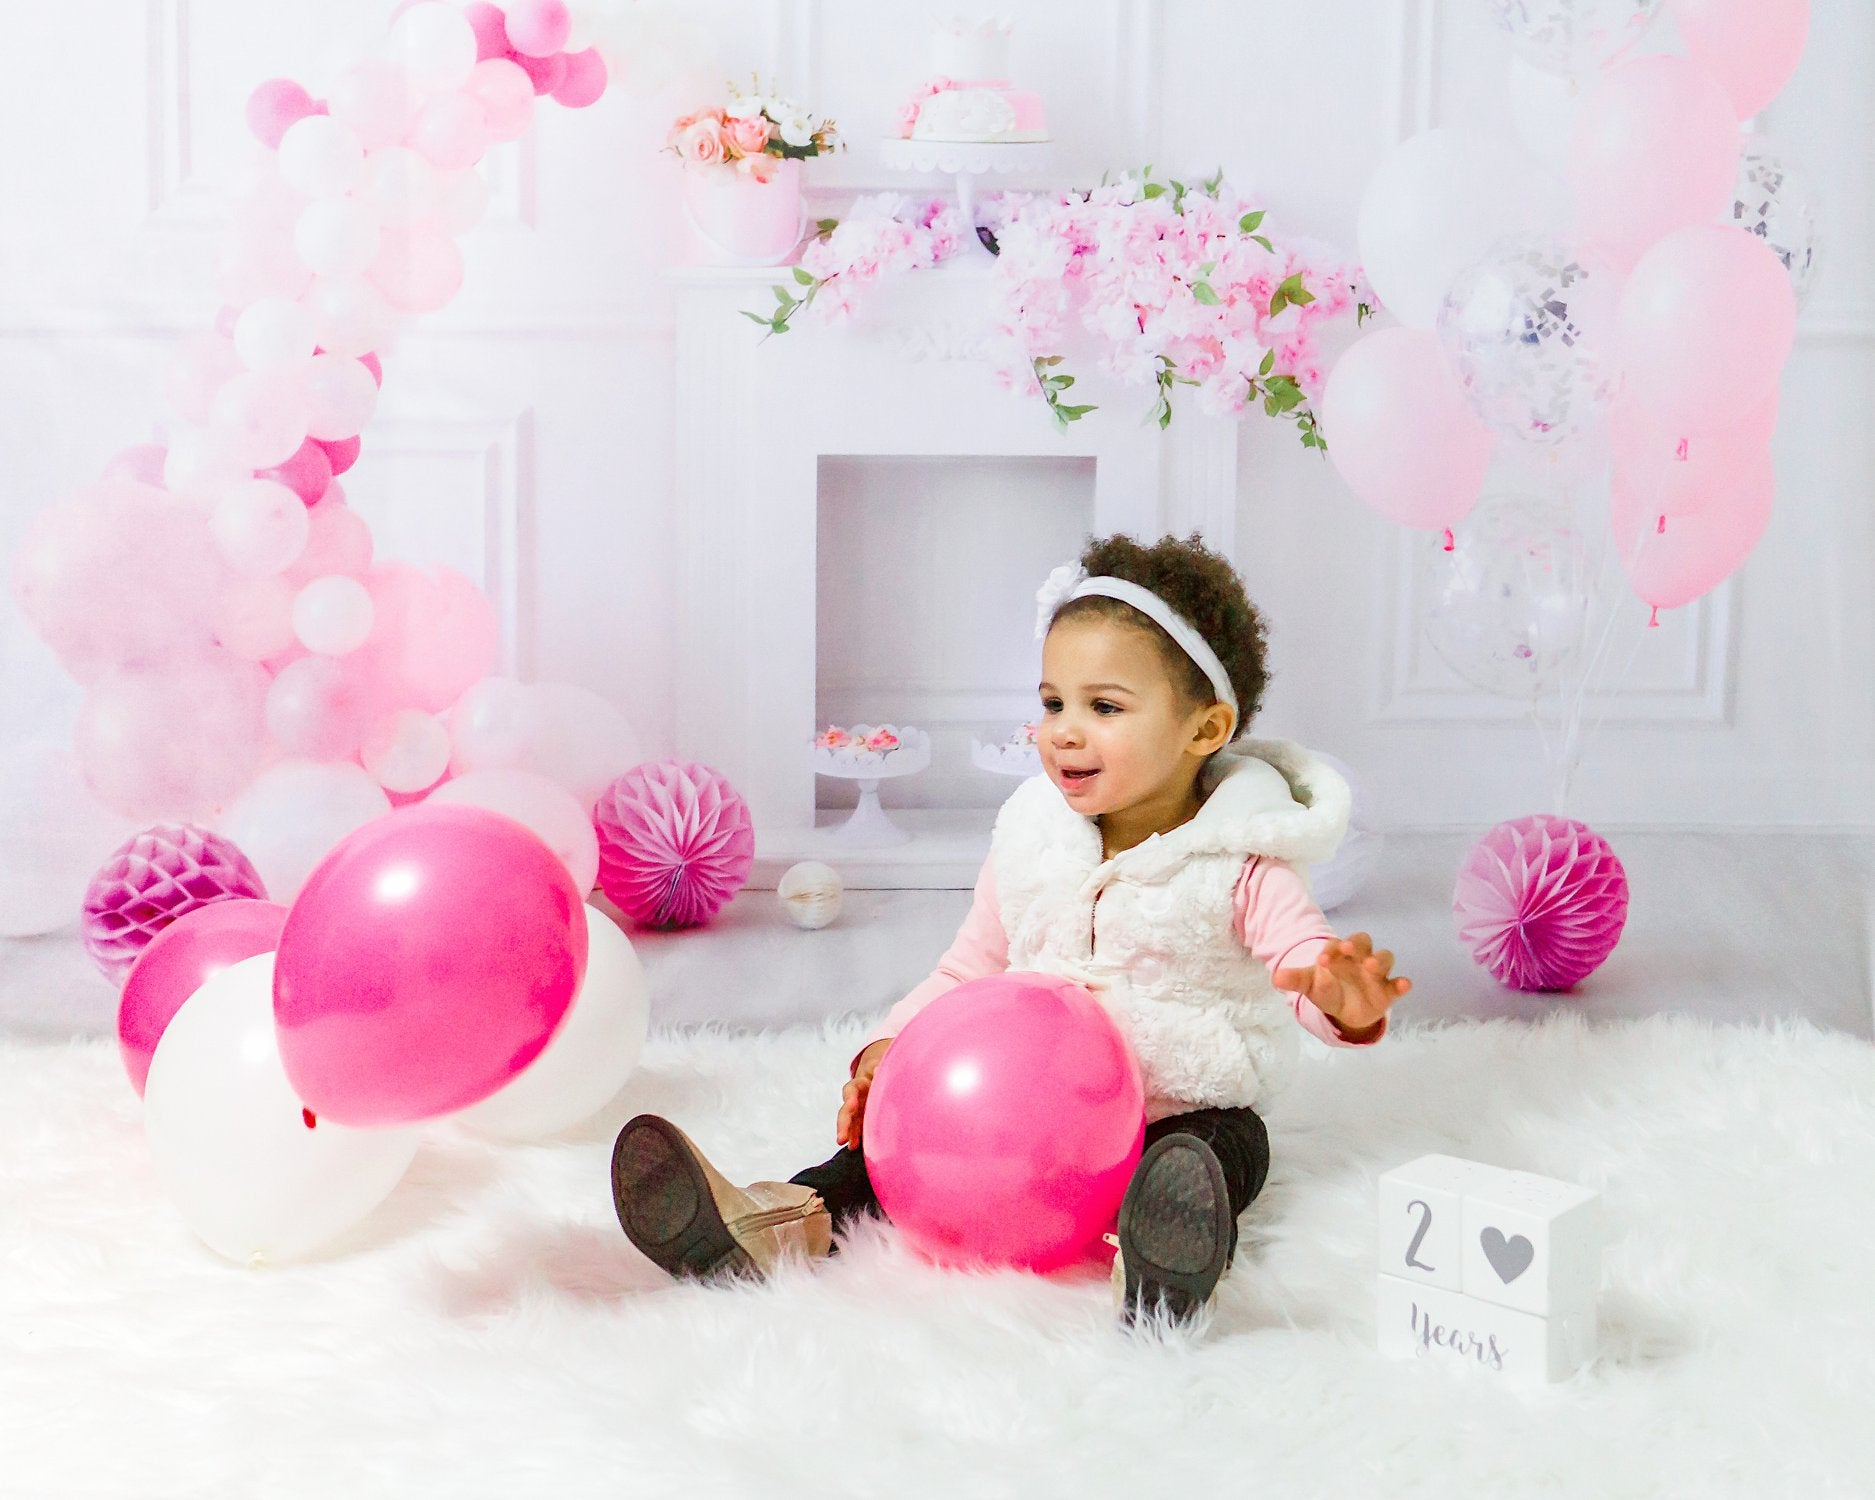 Princess White Wall Balloon Baby Show Backdrop